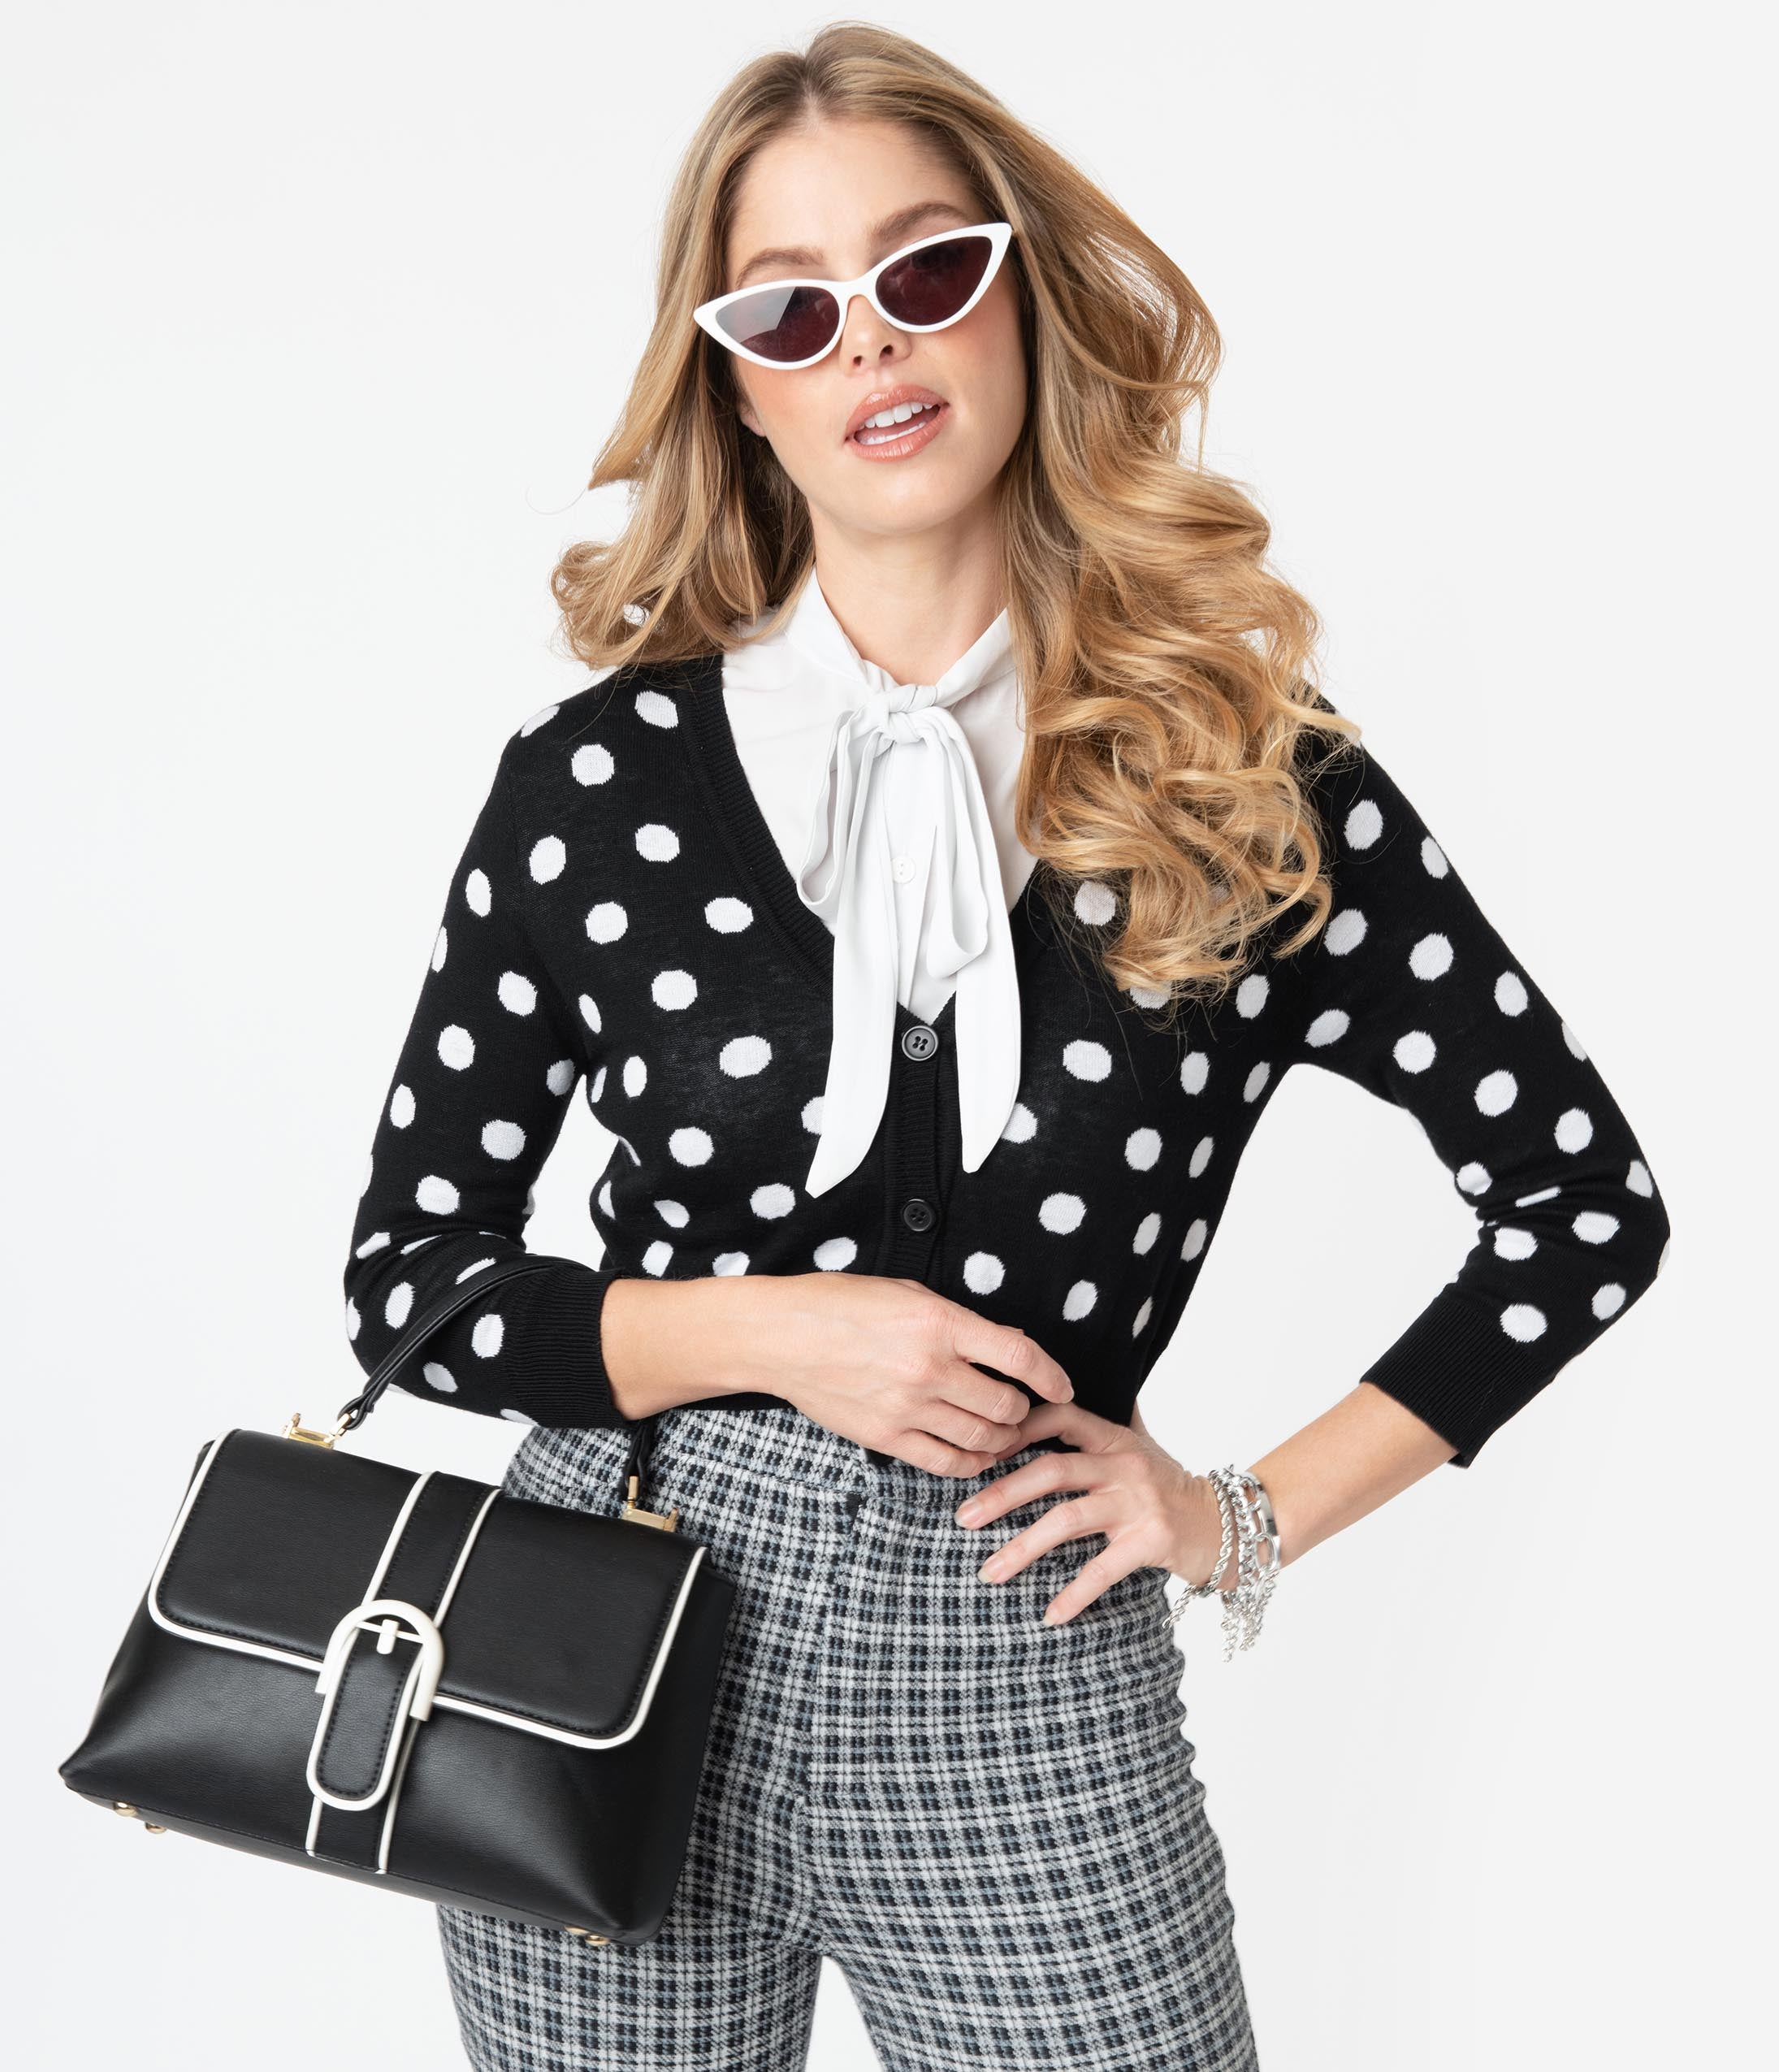 Vintage Sweaters, Retro Sweaters & Cardigan Black  White Polka Dot Crop Cardigan $36.00 AT vintagedancer.com